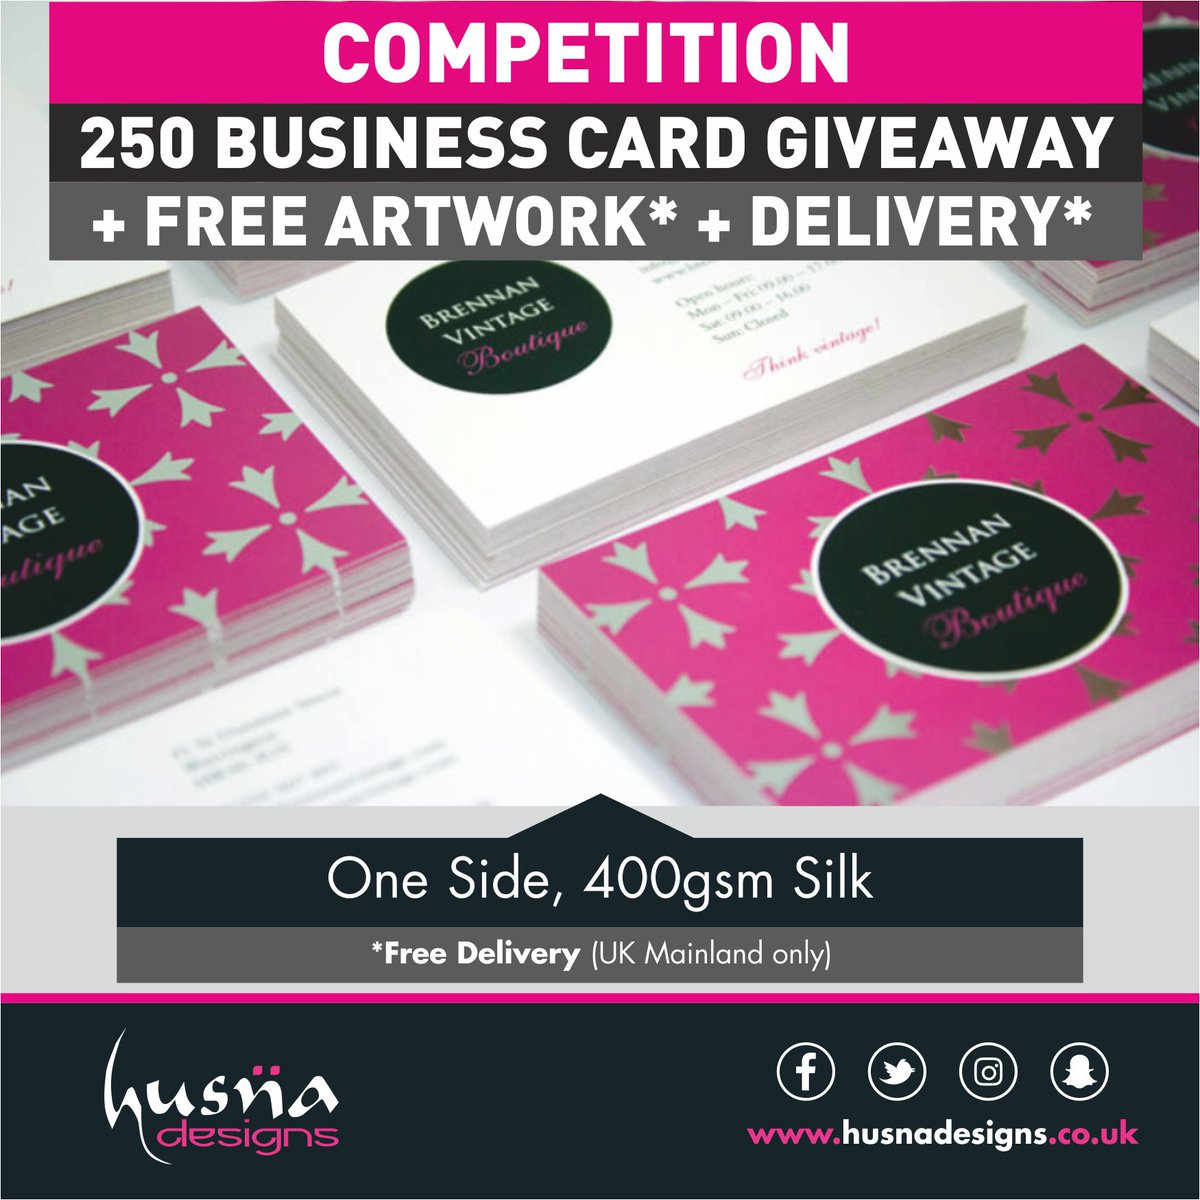 250 free business card giveaway free artwork free delivery competition freeprints edinburgh httpstco4gzkk2cxcw httpstcoe4sj4fo9n6 - 250 Free Business Cards Free Shipping